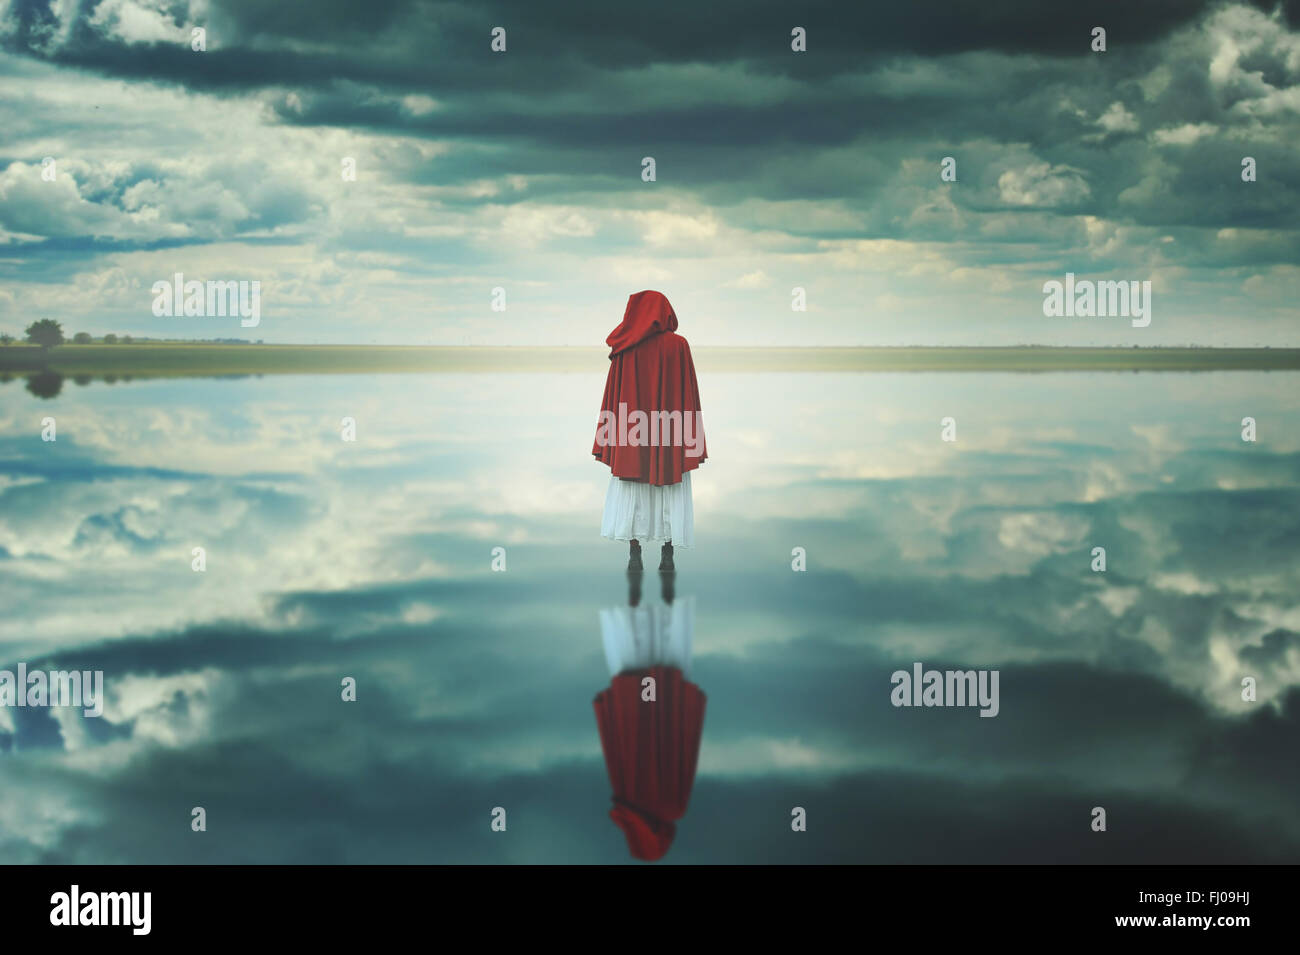 Red hooded woman in a strange landscape with clouds. Fantasy and surreal - Stock Image